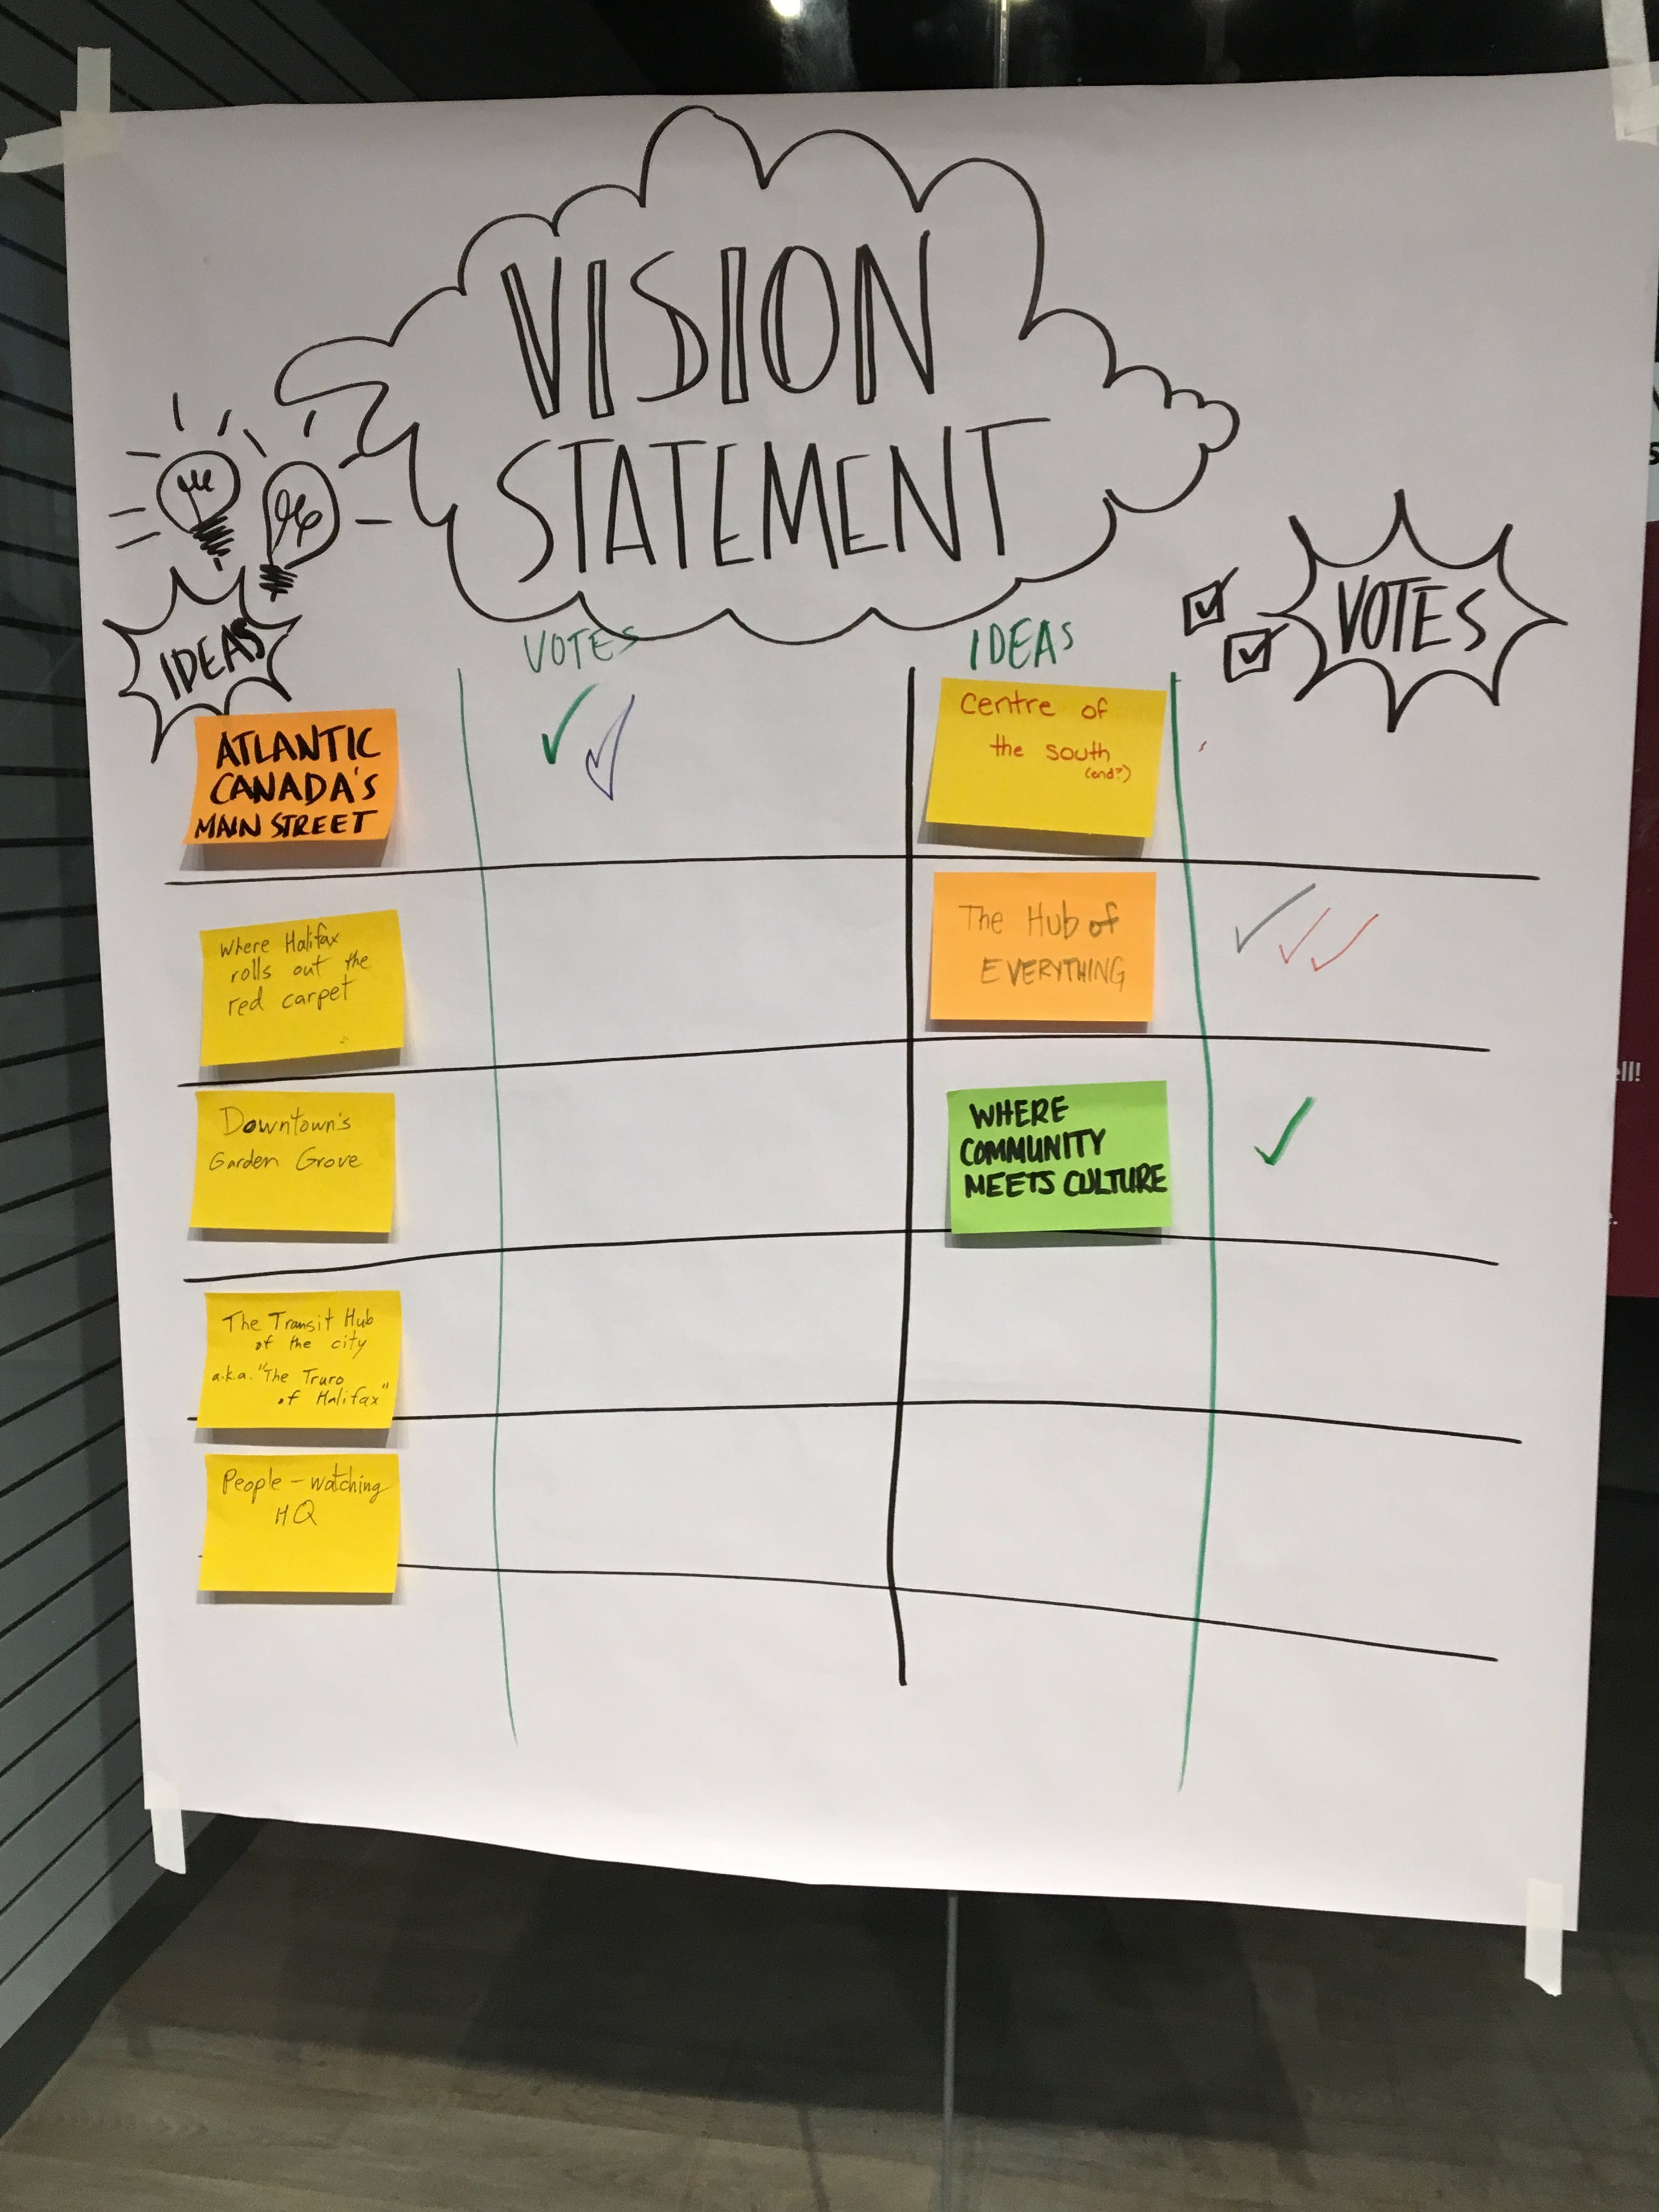 Potential vision statements